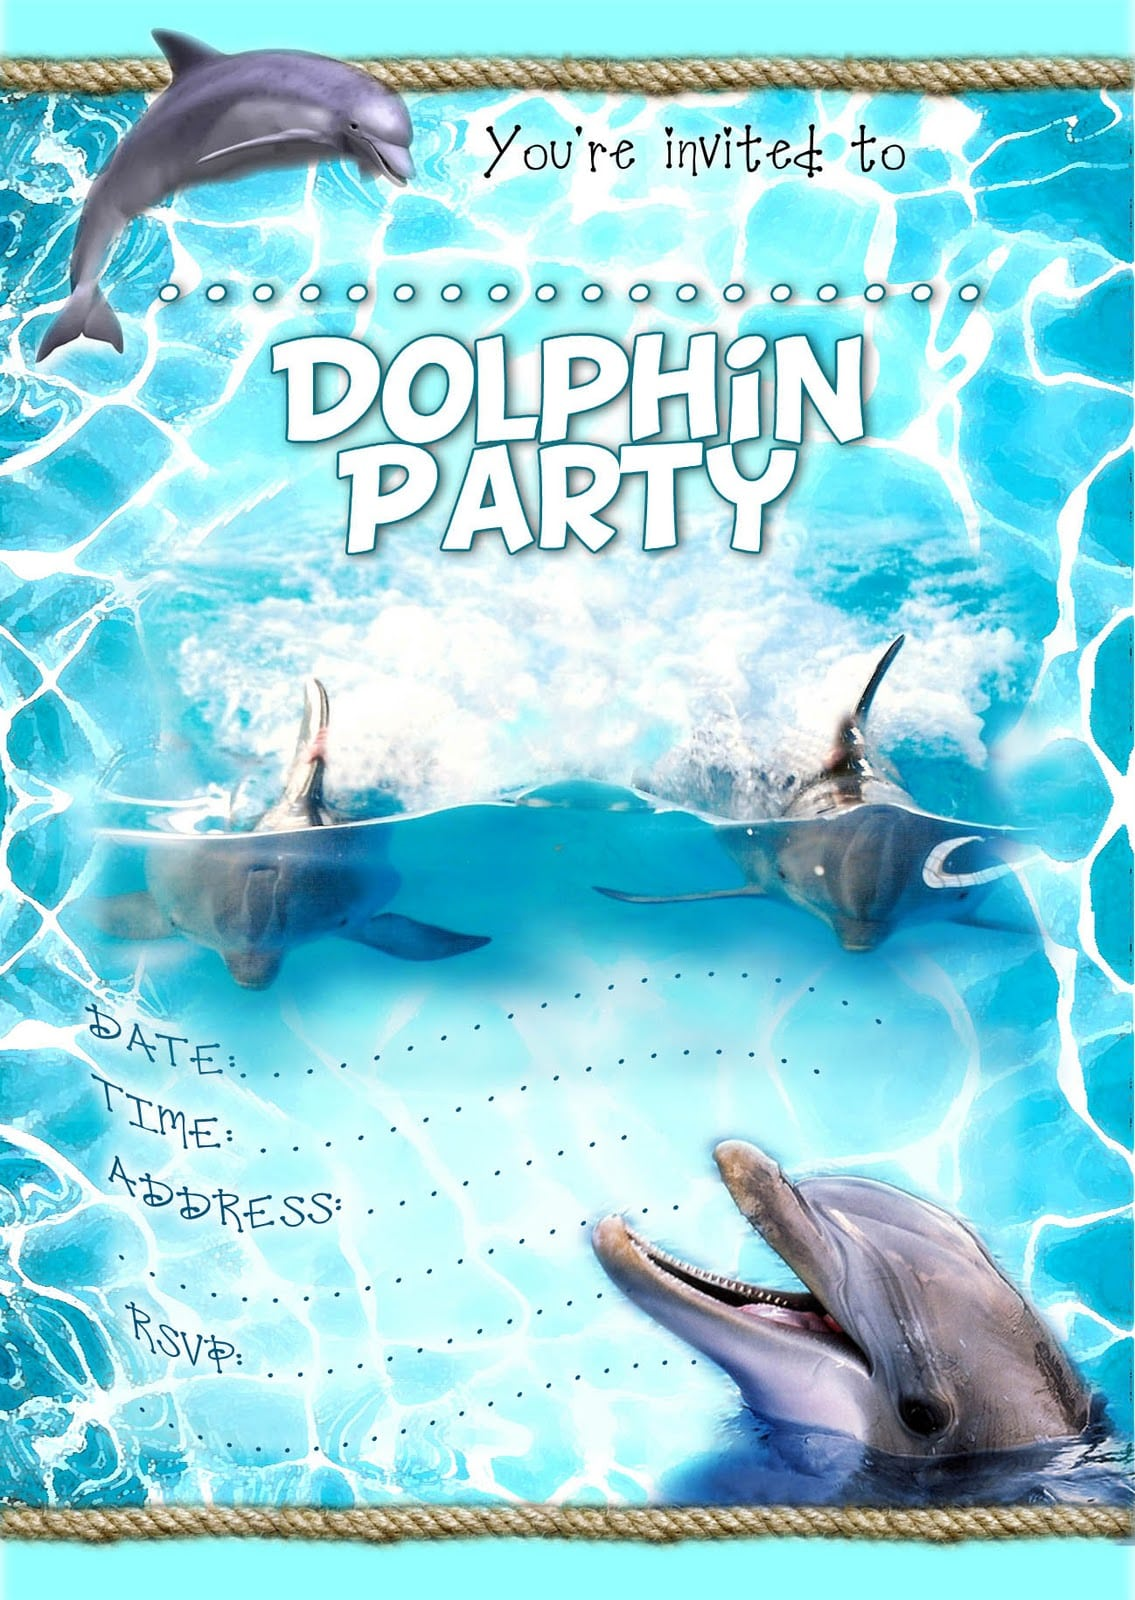 Striking Pool Party Invitation Template Word Kids Party